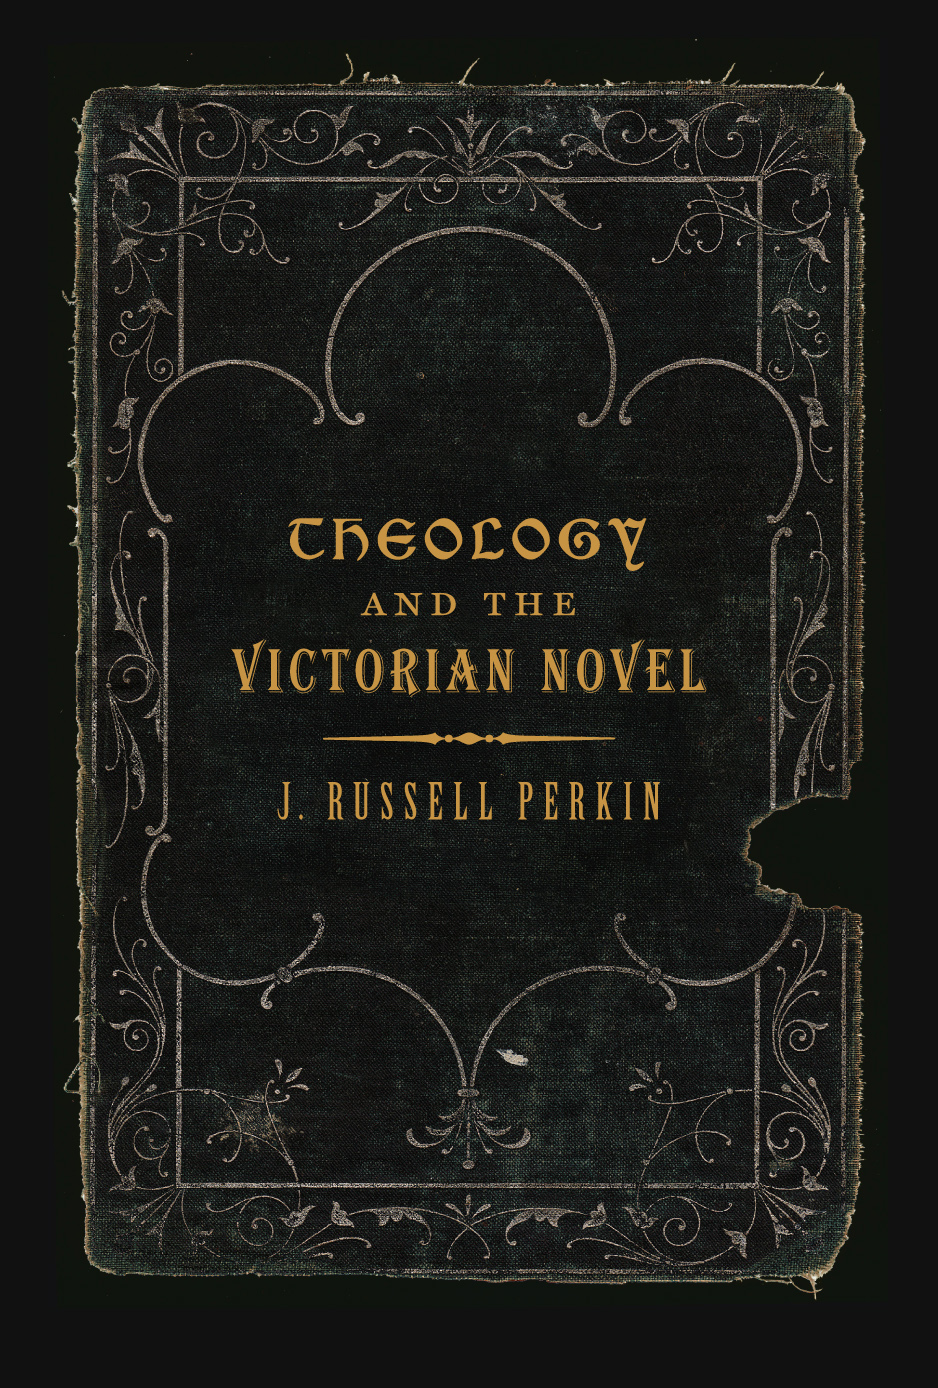 victorian novel Victorian england produced some of the greatest novelists in western history, including charles dickens, thomas hardy, and george eliot critical analysis focuses on the development of the victorian novel though the second half of the 19th century.